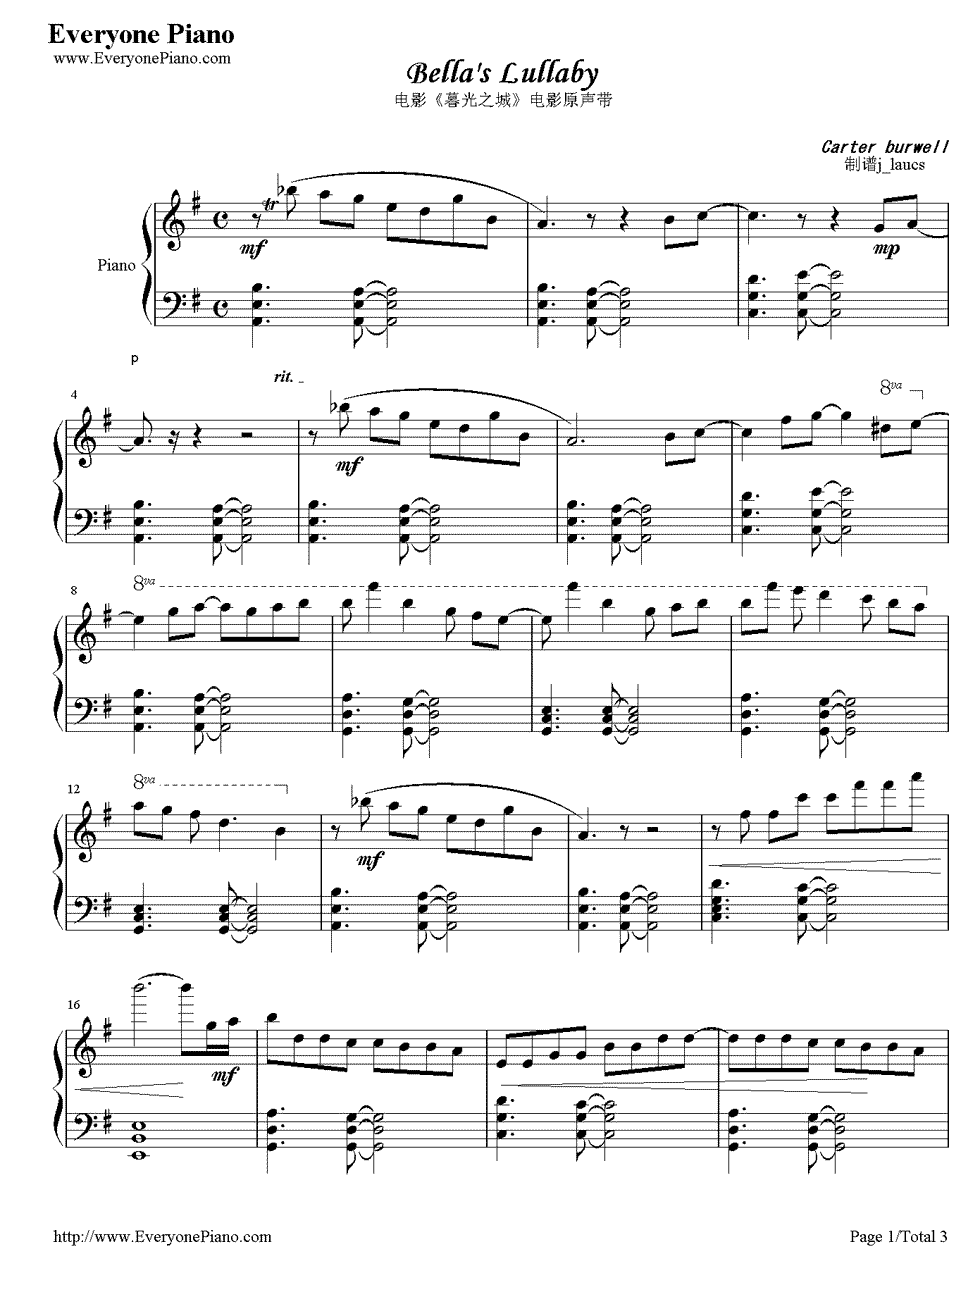 Free Bella S Lullaby Sheet Music Preview 1 Clarinet Music Jazz Piano Piano Sheet Music